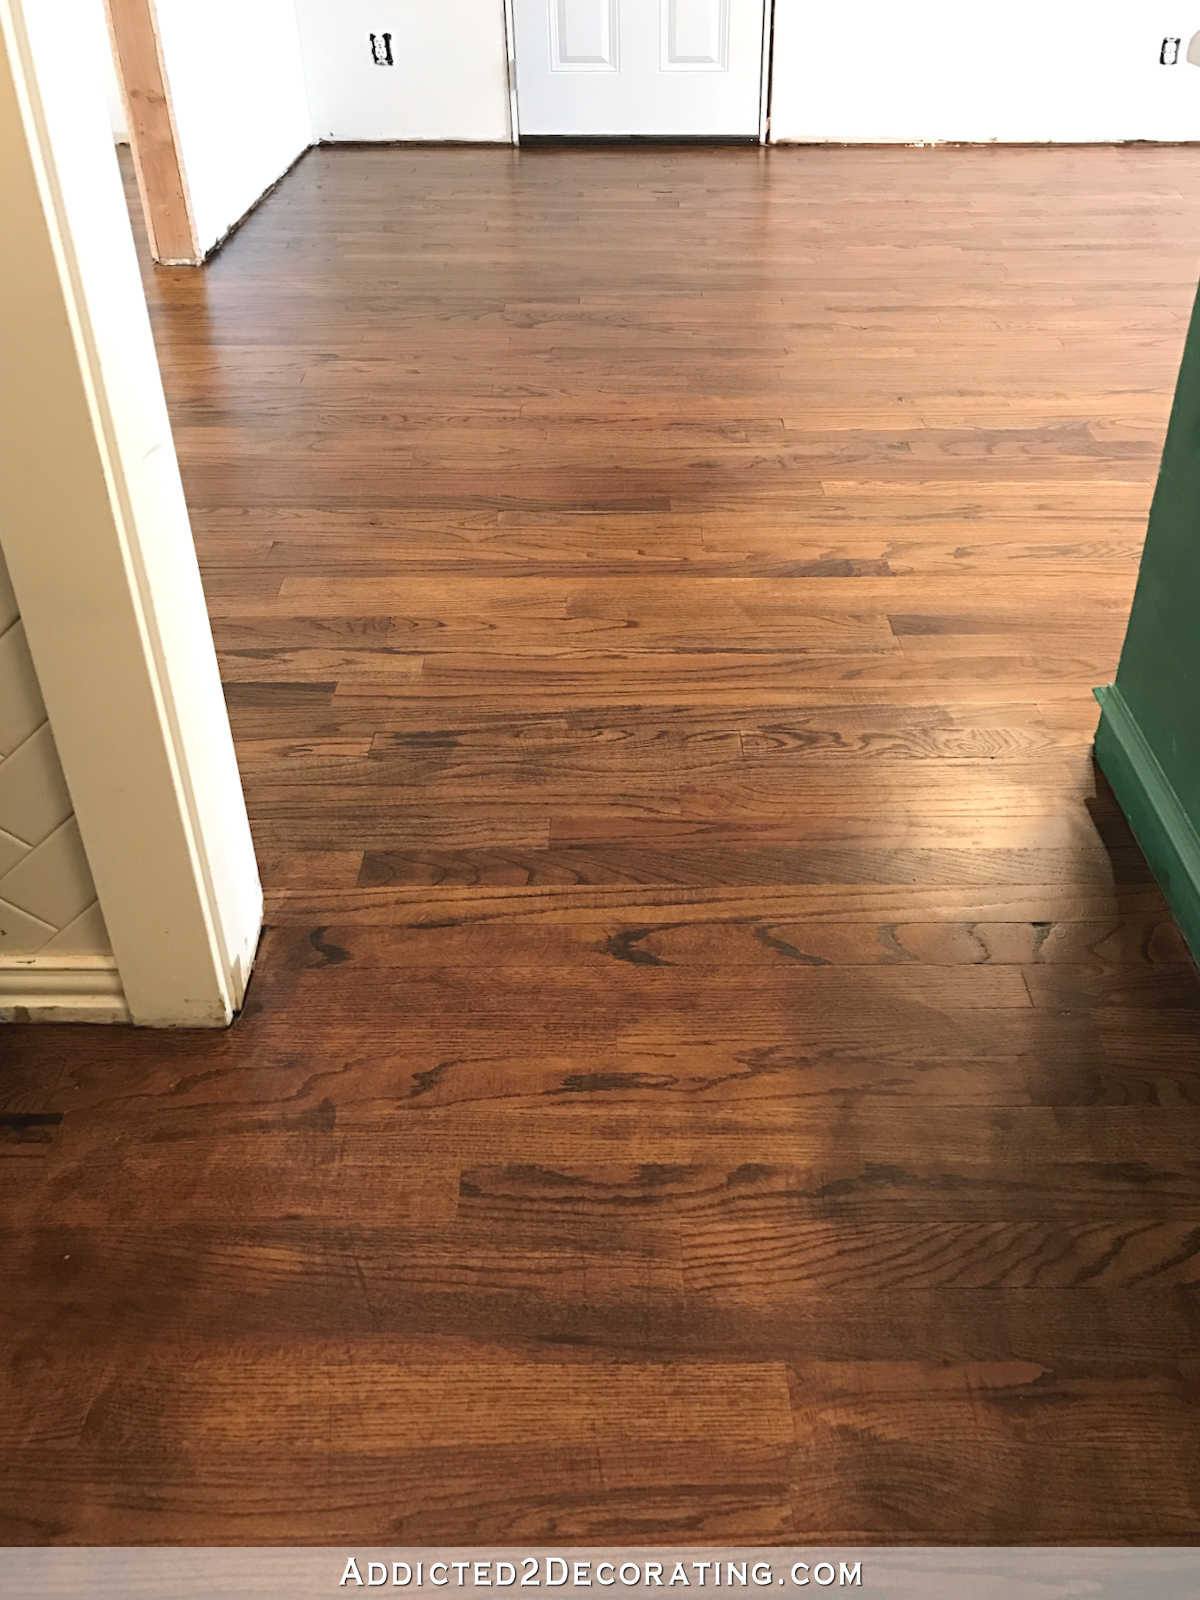 hardwood floor refinishing las vegas of how to refinish wood floor do you have a wooden floor that looks regarding how to refinish wood floor engineered hardwood floor parquet wood flooring refinishing floors